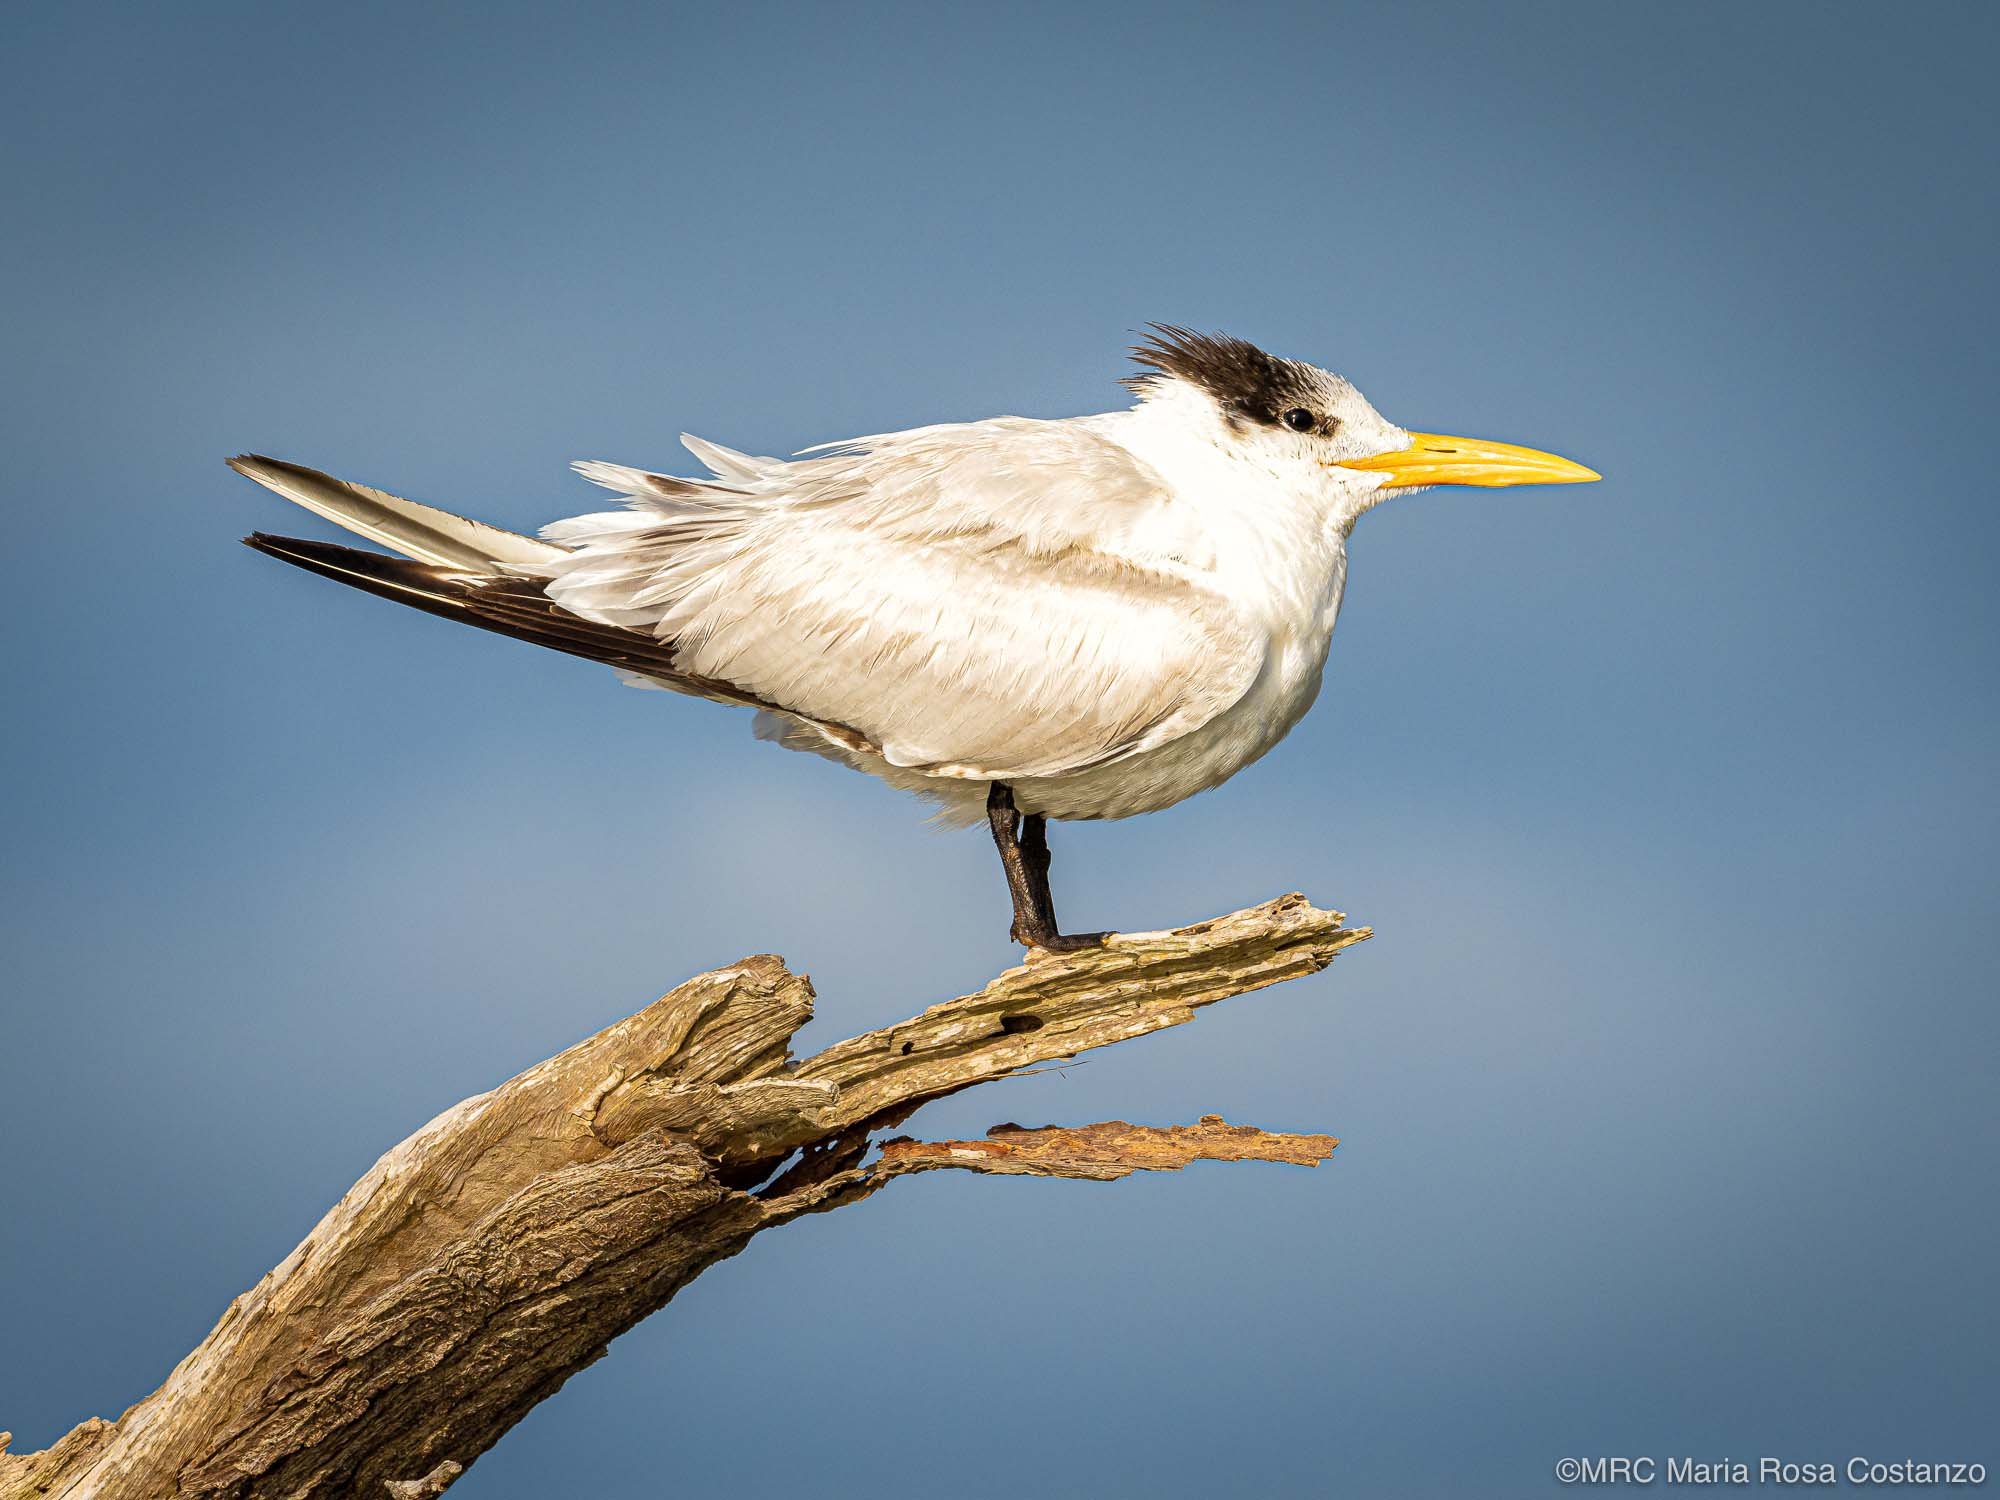 Chinese Crested Tern photographed by Maria Rosa Costanzo, student with Potter School of Photography. Photo created on safari in Everglades National Park, Florida, USA